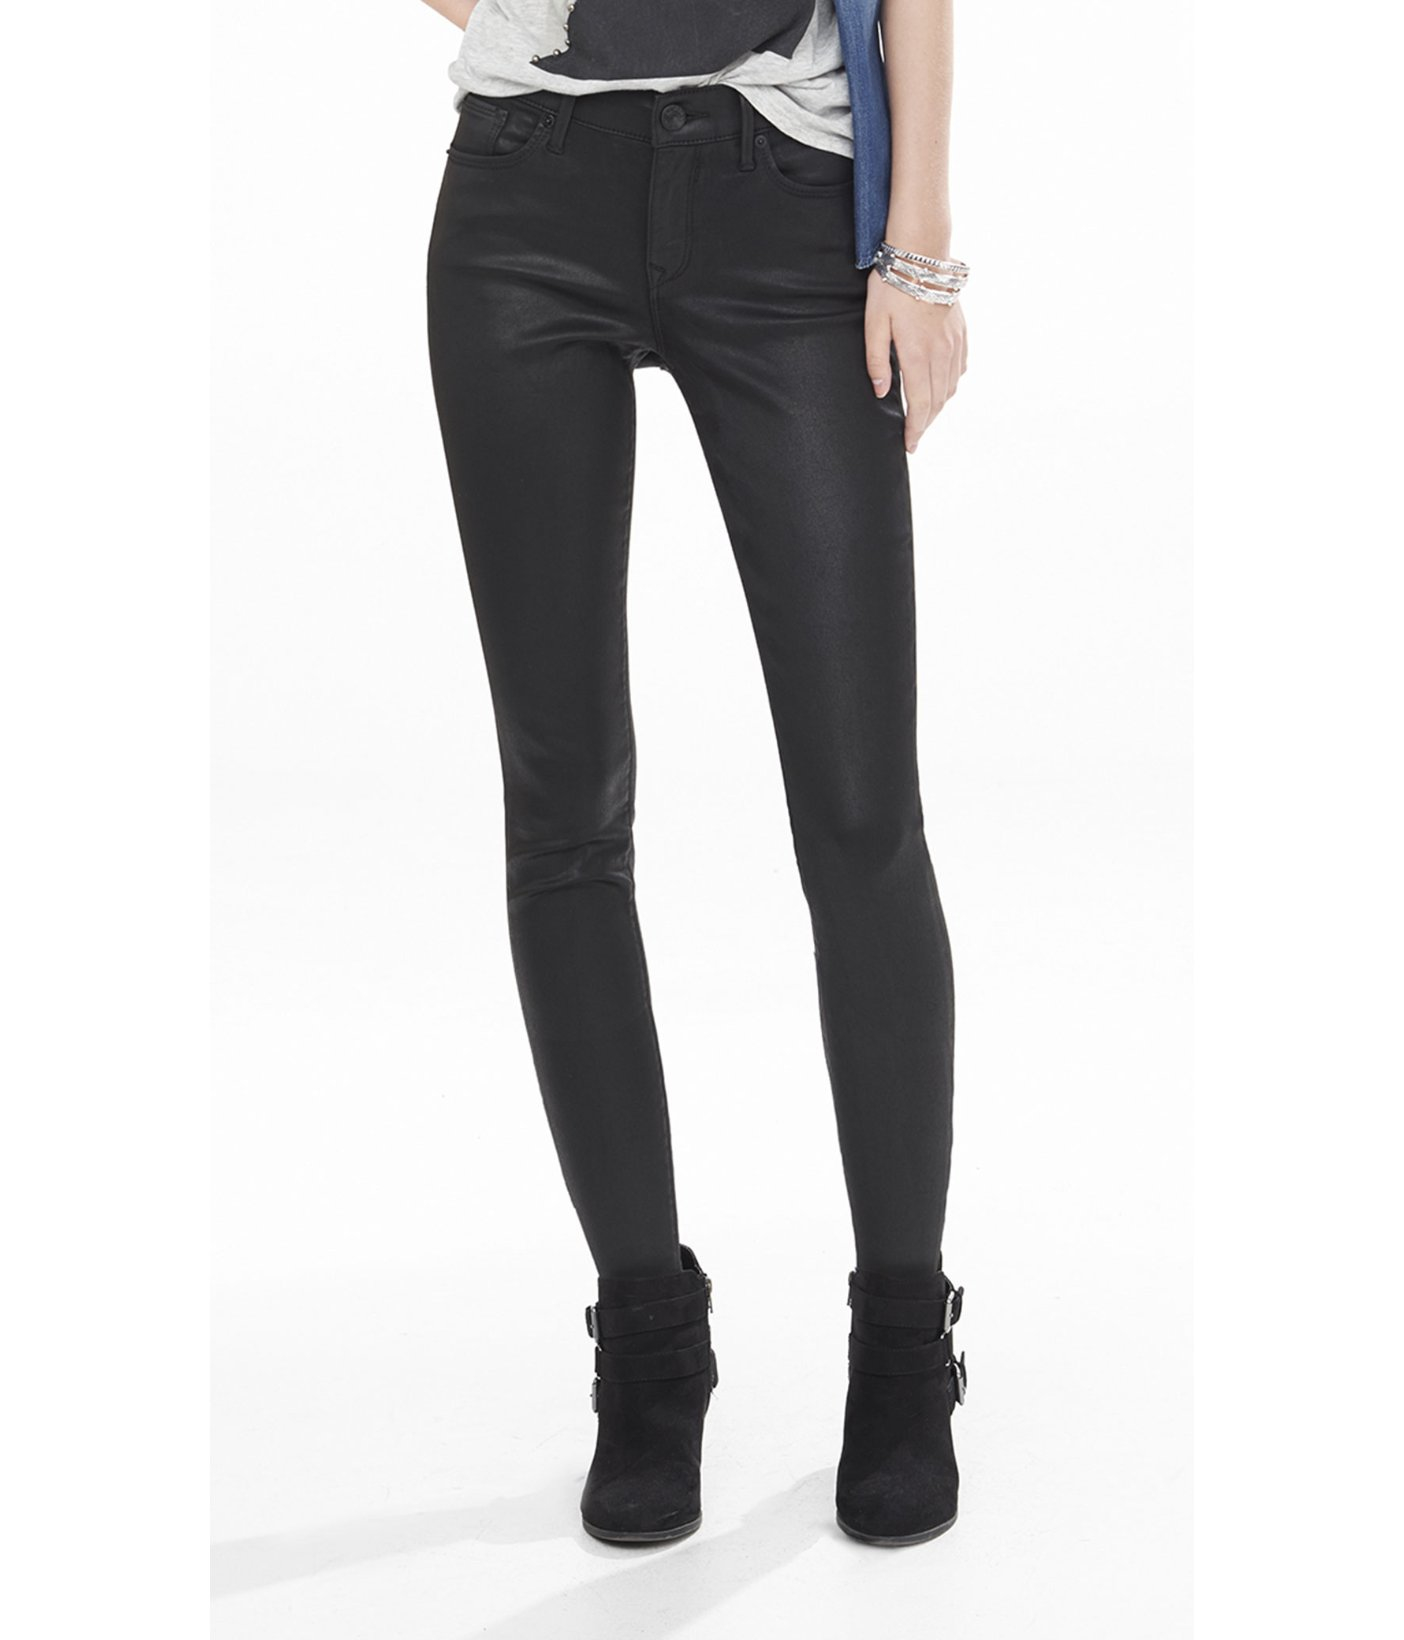 Black coated jeans women